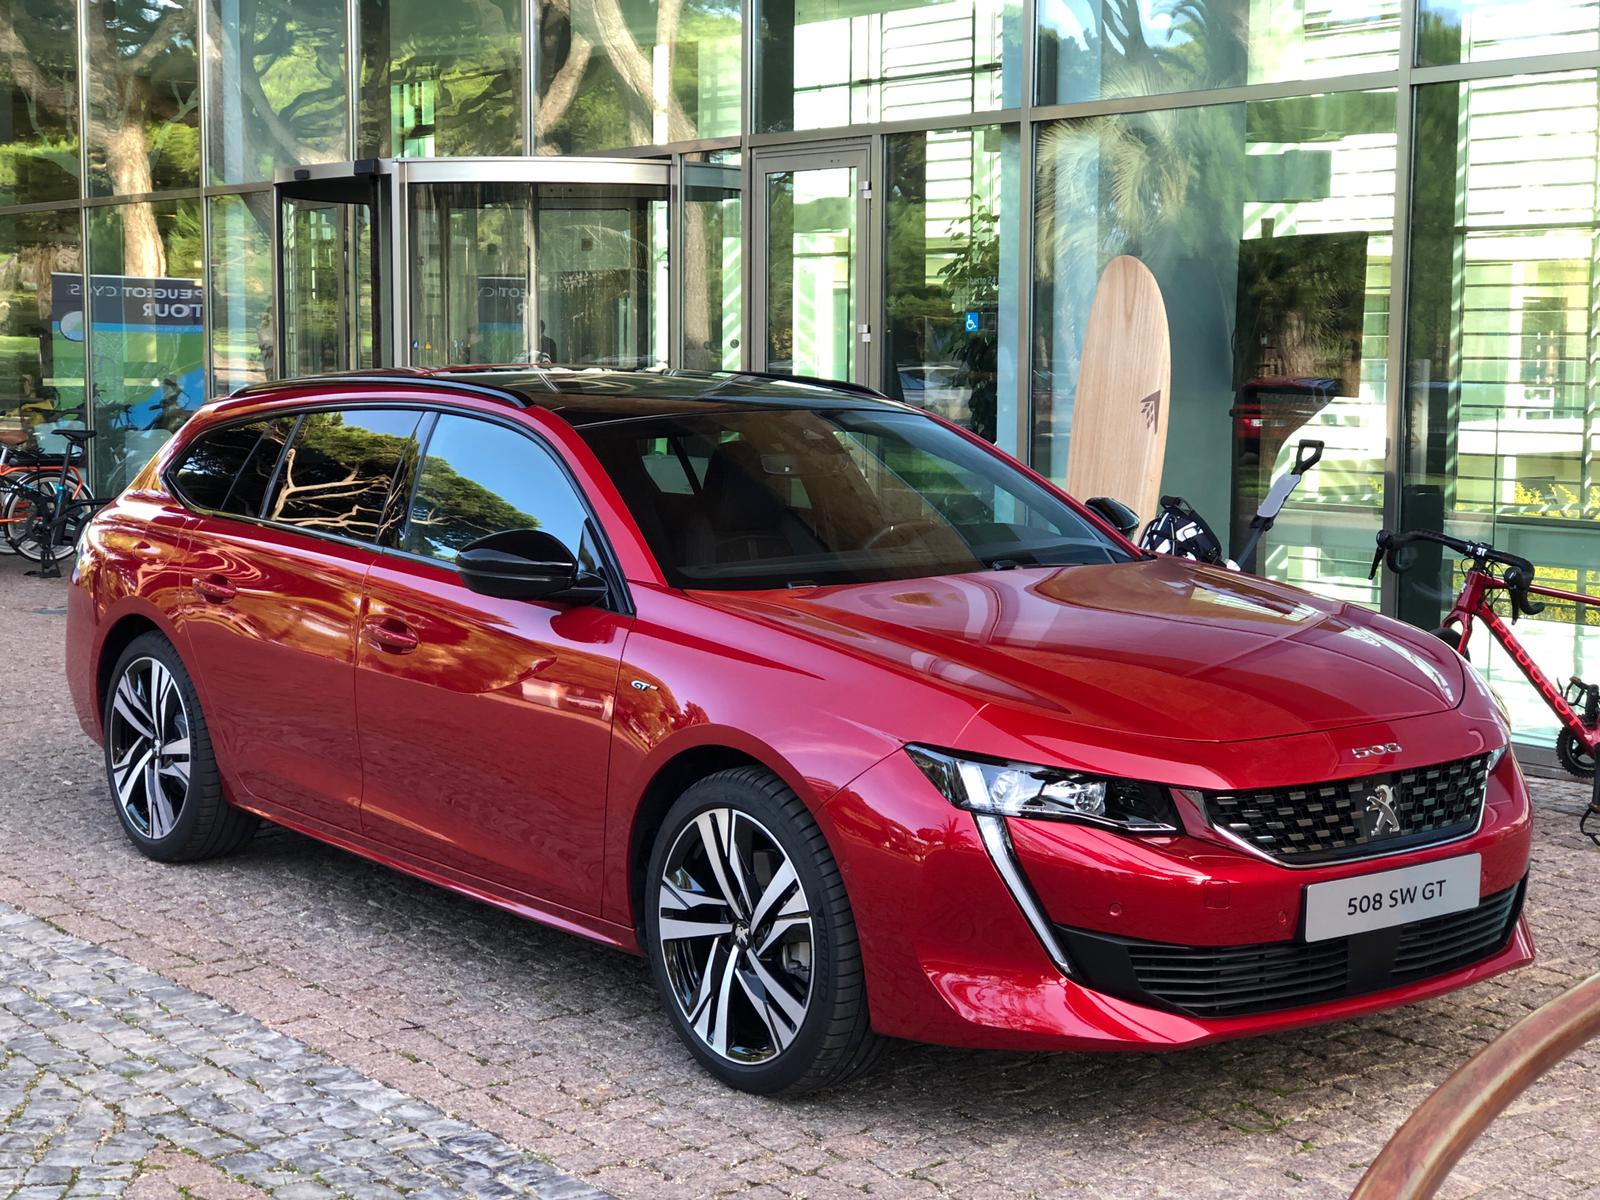 Peugeot 508 Voted Most Beautiful Car Of The Year 2018 Videos